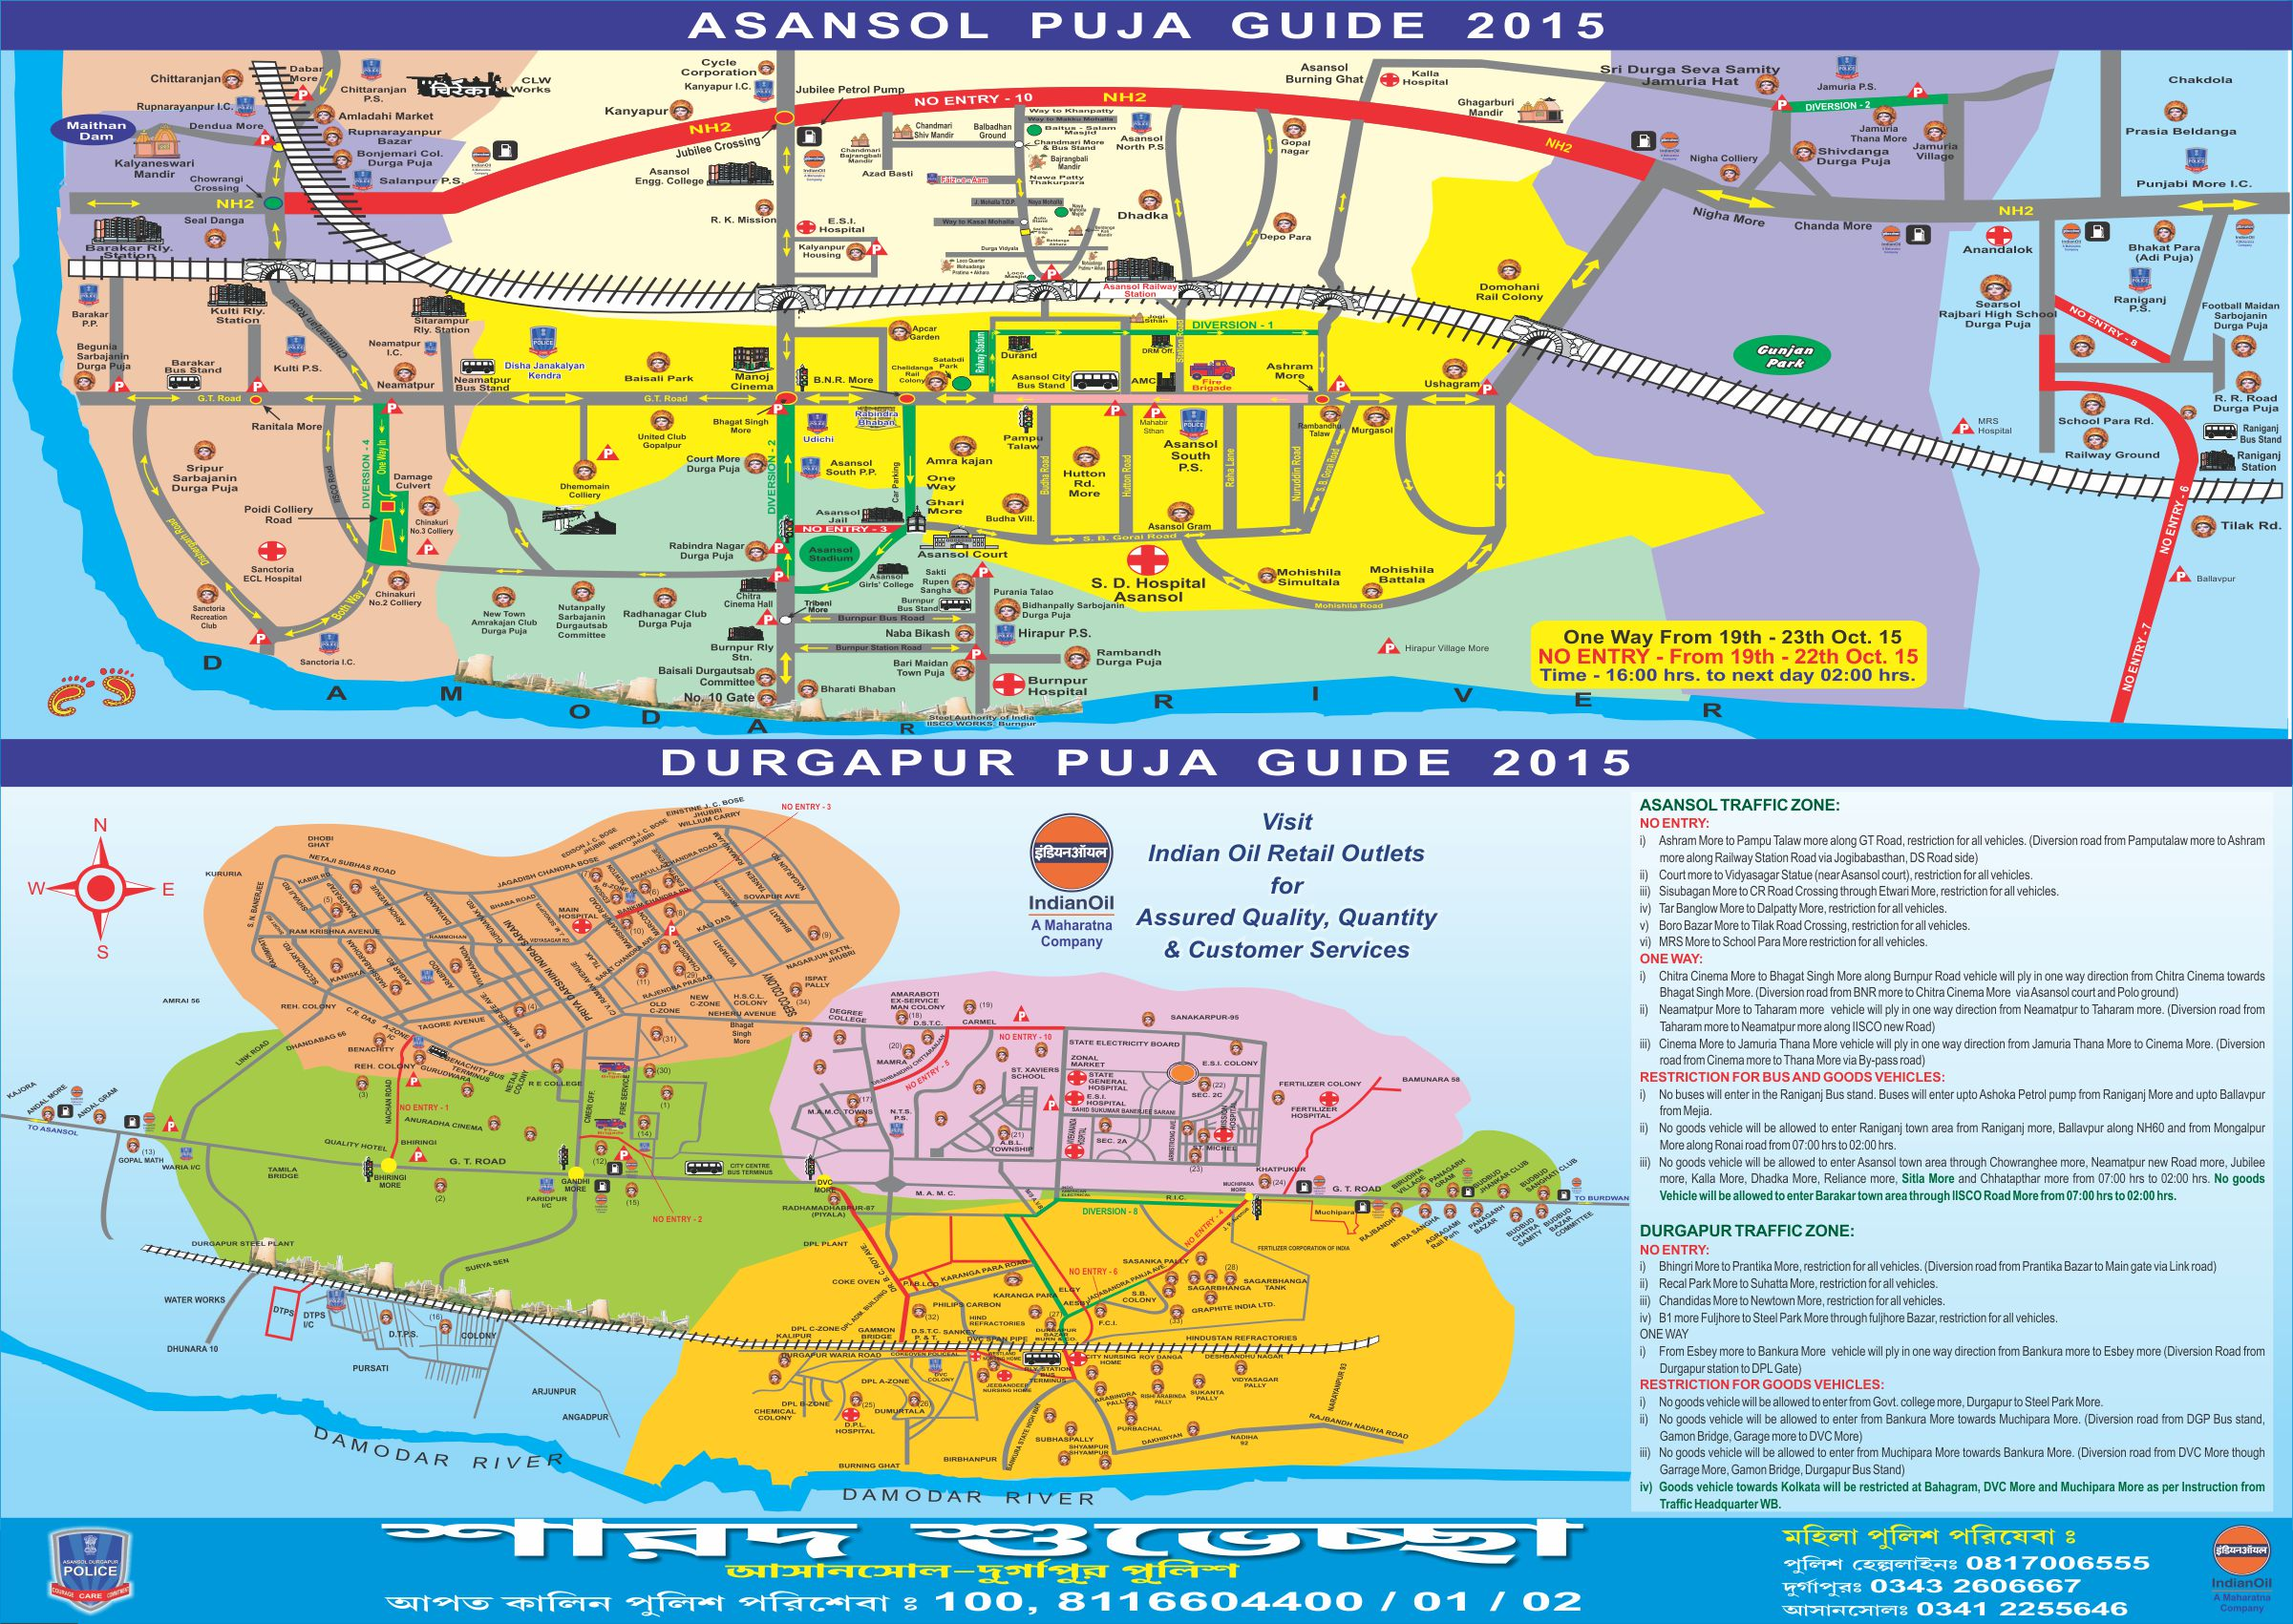 PUJA GUIDE MAP 2015